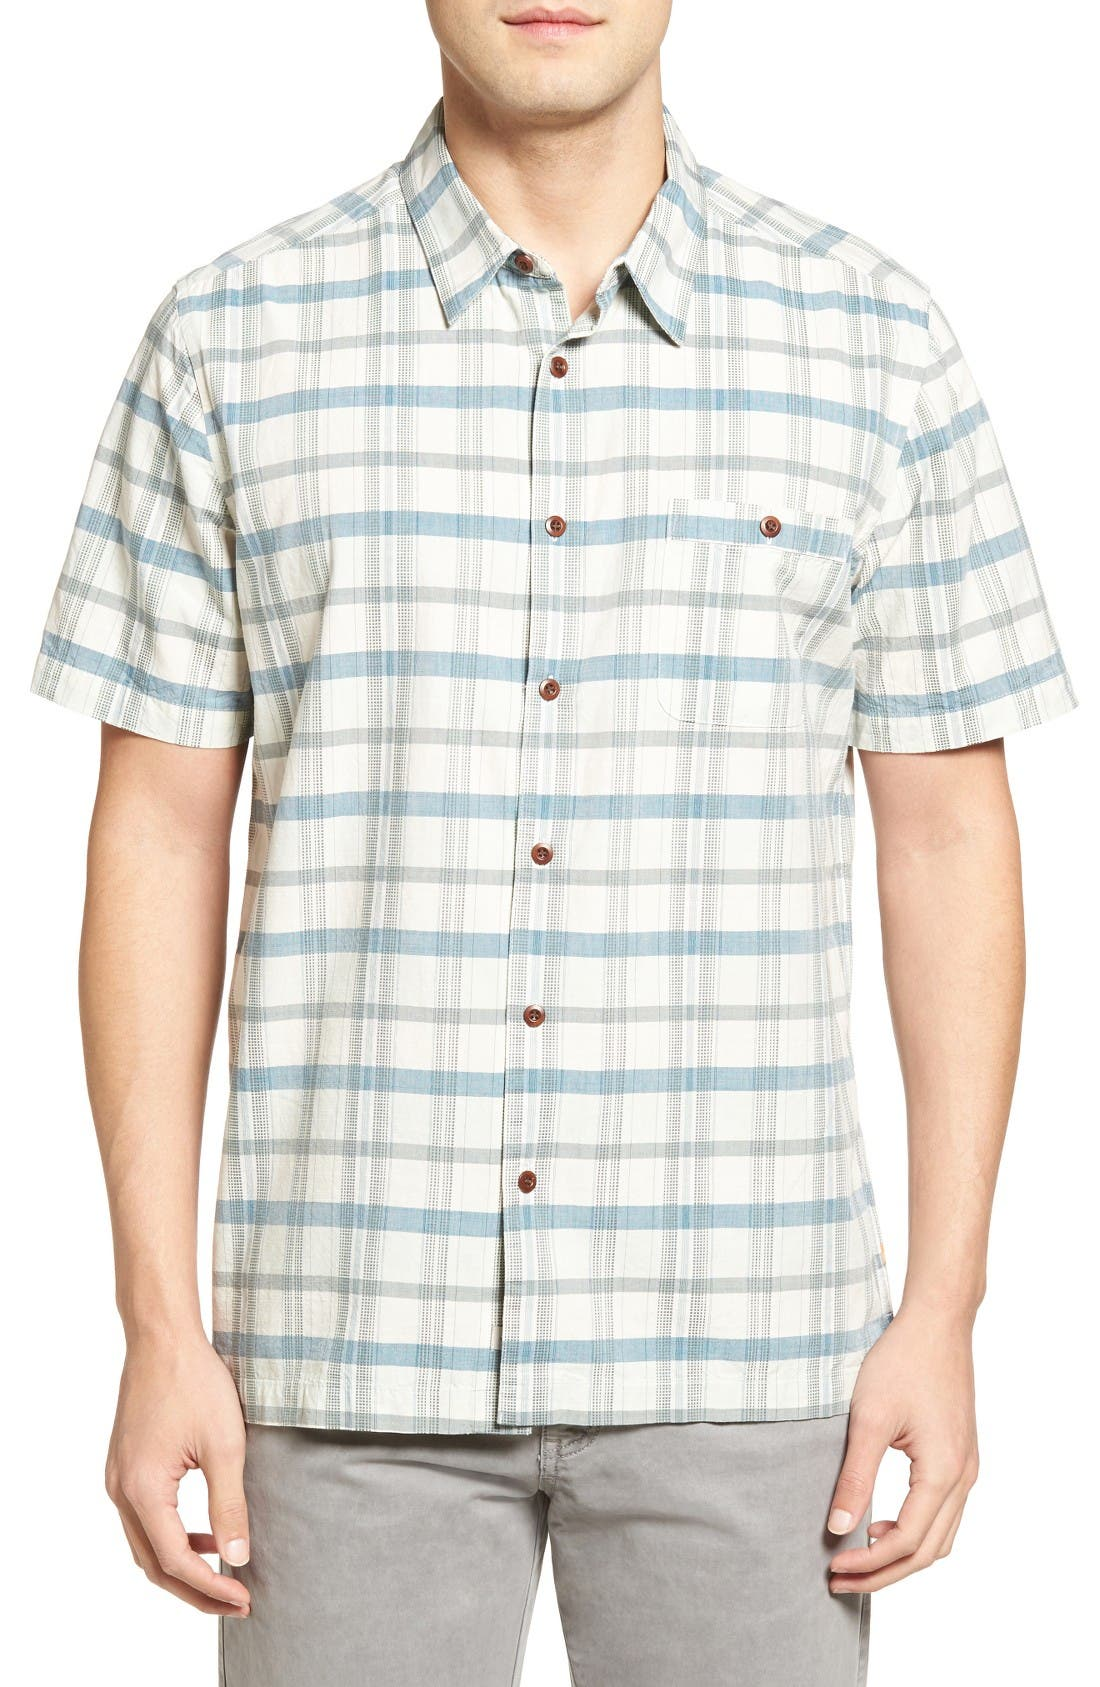 Quiksilver Waterman Collection 'Idle Time' Regular Fit Plaid Camp Shirt